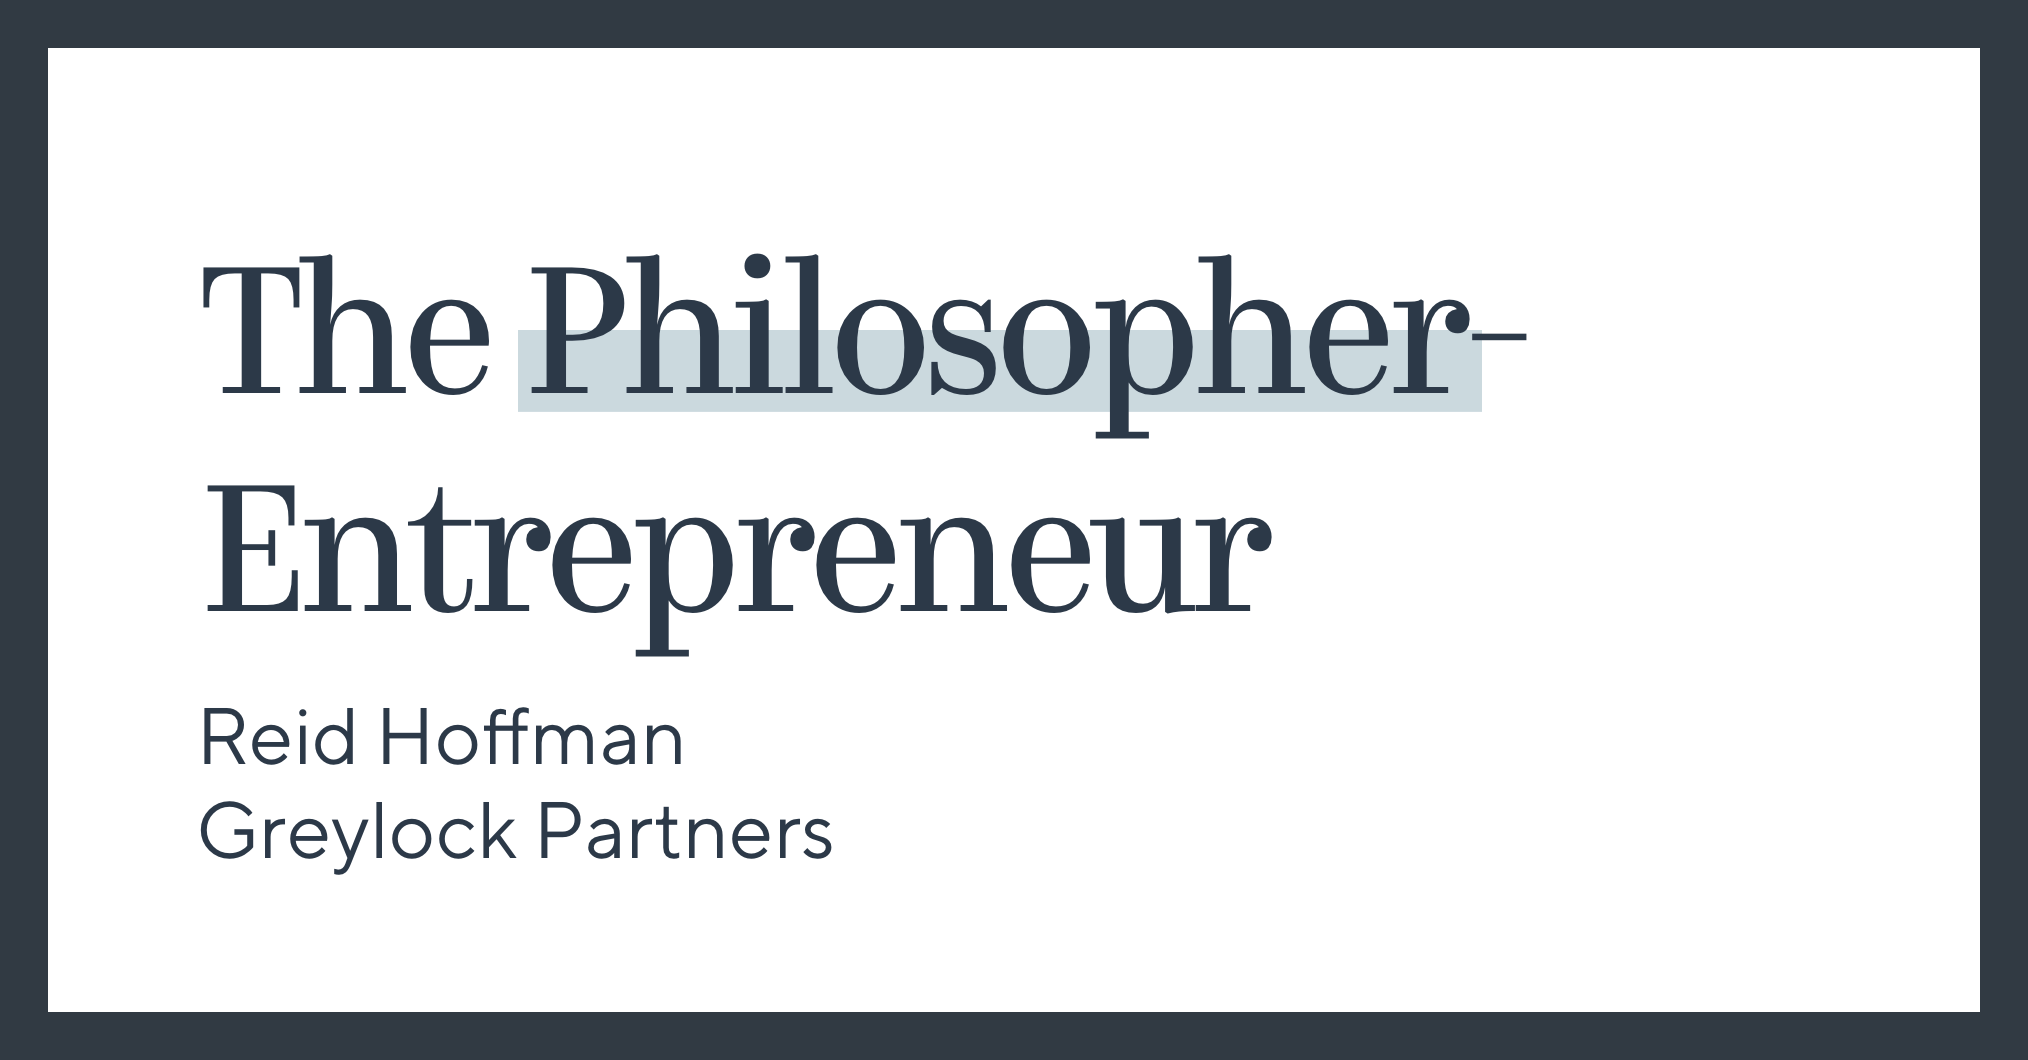 When people think about the backgrounds of successful entrepreneurs, philosophy rarely comes to mind. Computer science, biology, and design seem immed